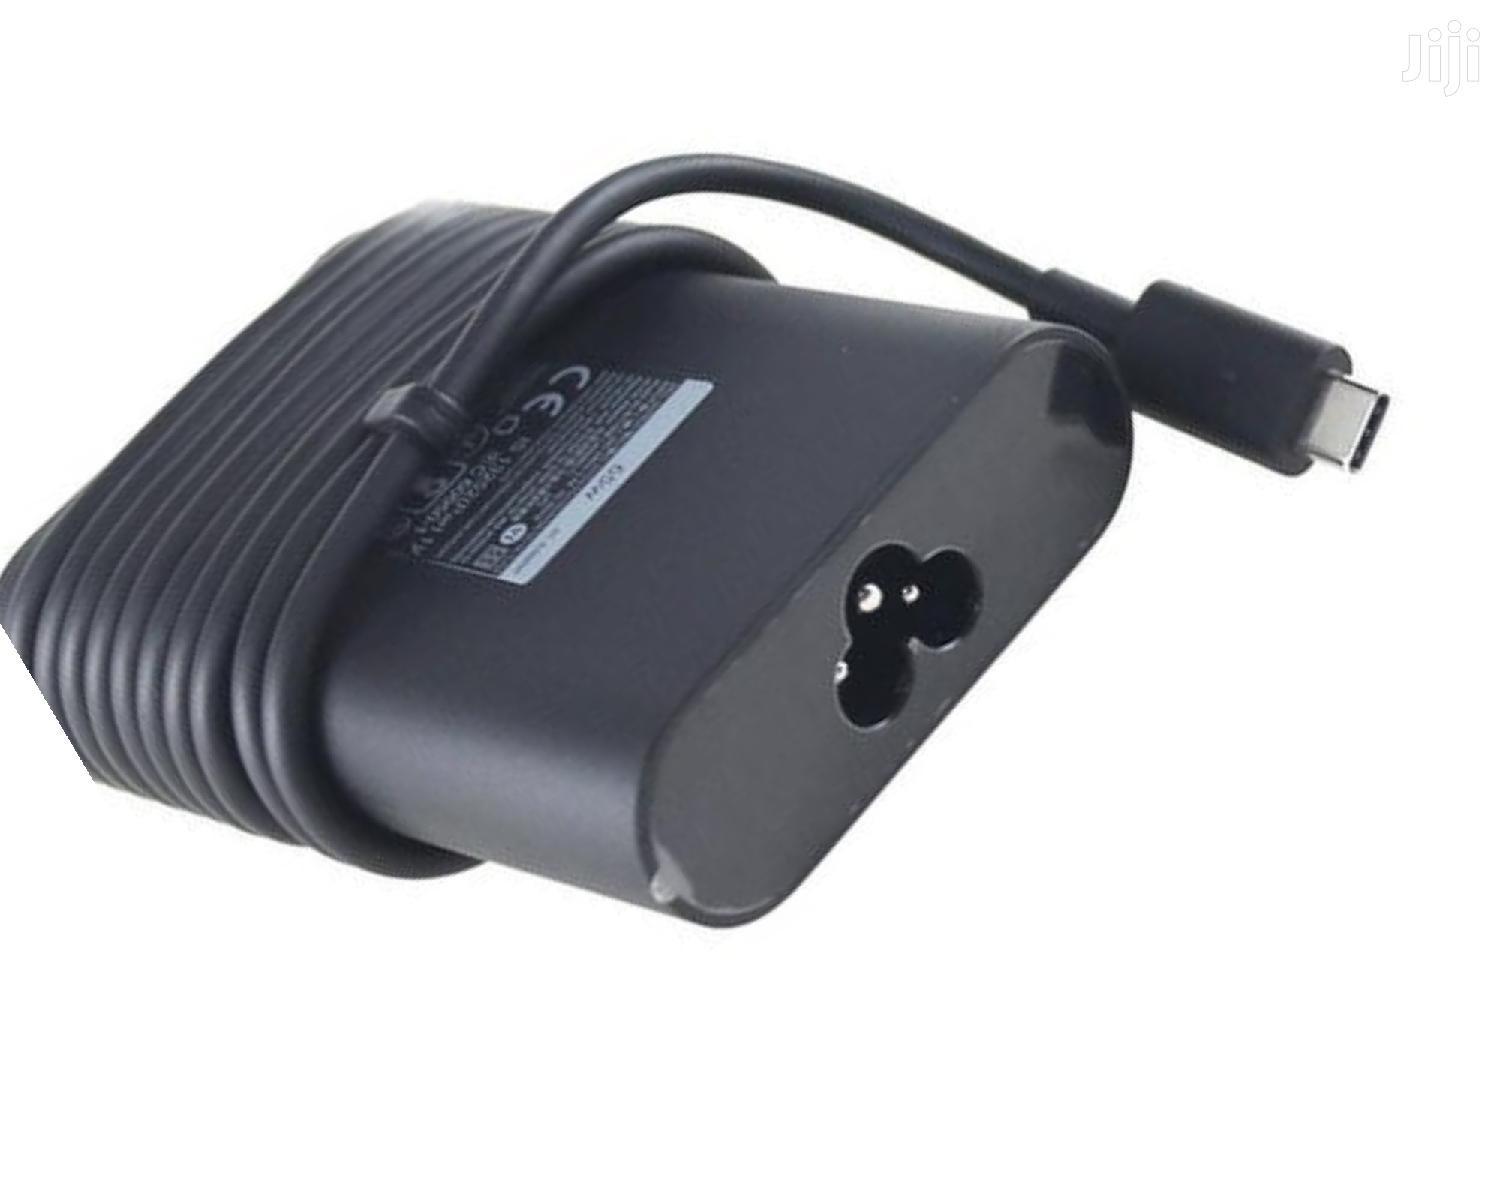 Dell XPS 12 9250 AC Adapter 3.25A 65W Type C in Nairobi Central -  Accessories & Supplies for Electronics, Mobichromes Technologies    Jiji.co.ke for sale in Nairobi Central   Buy Accessories &